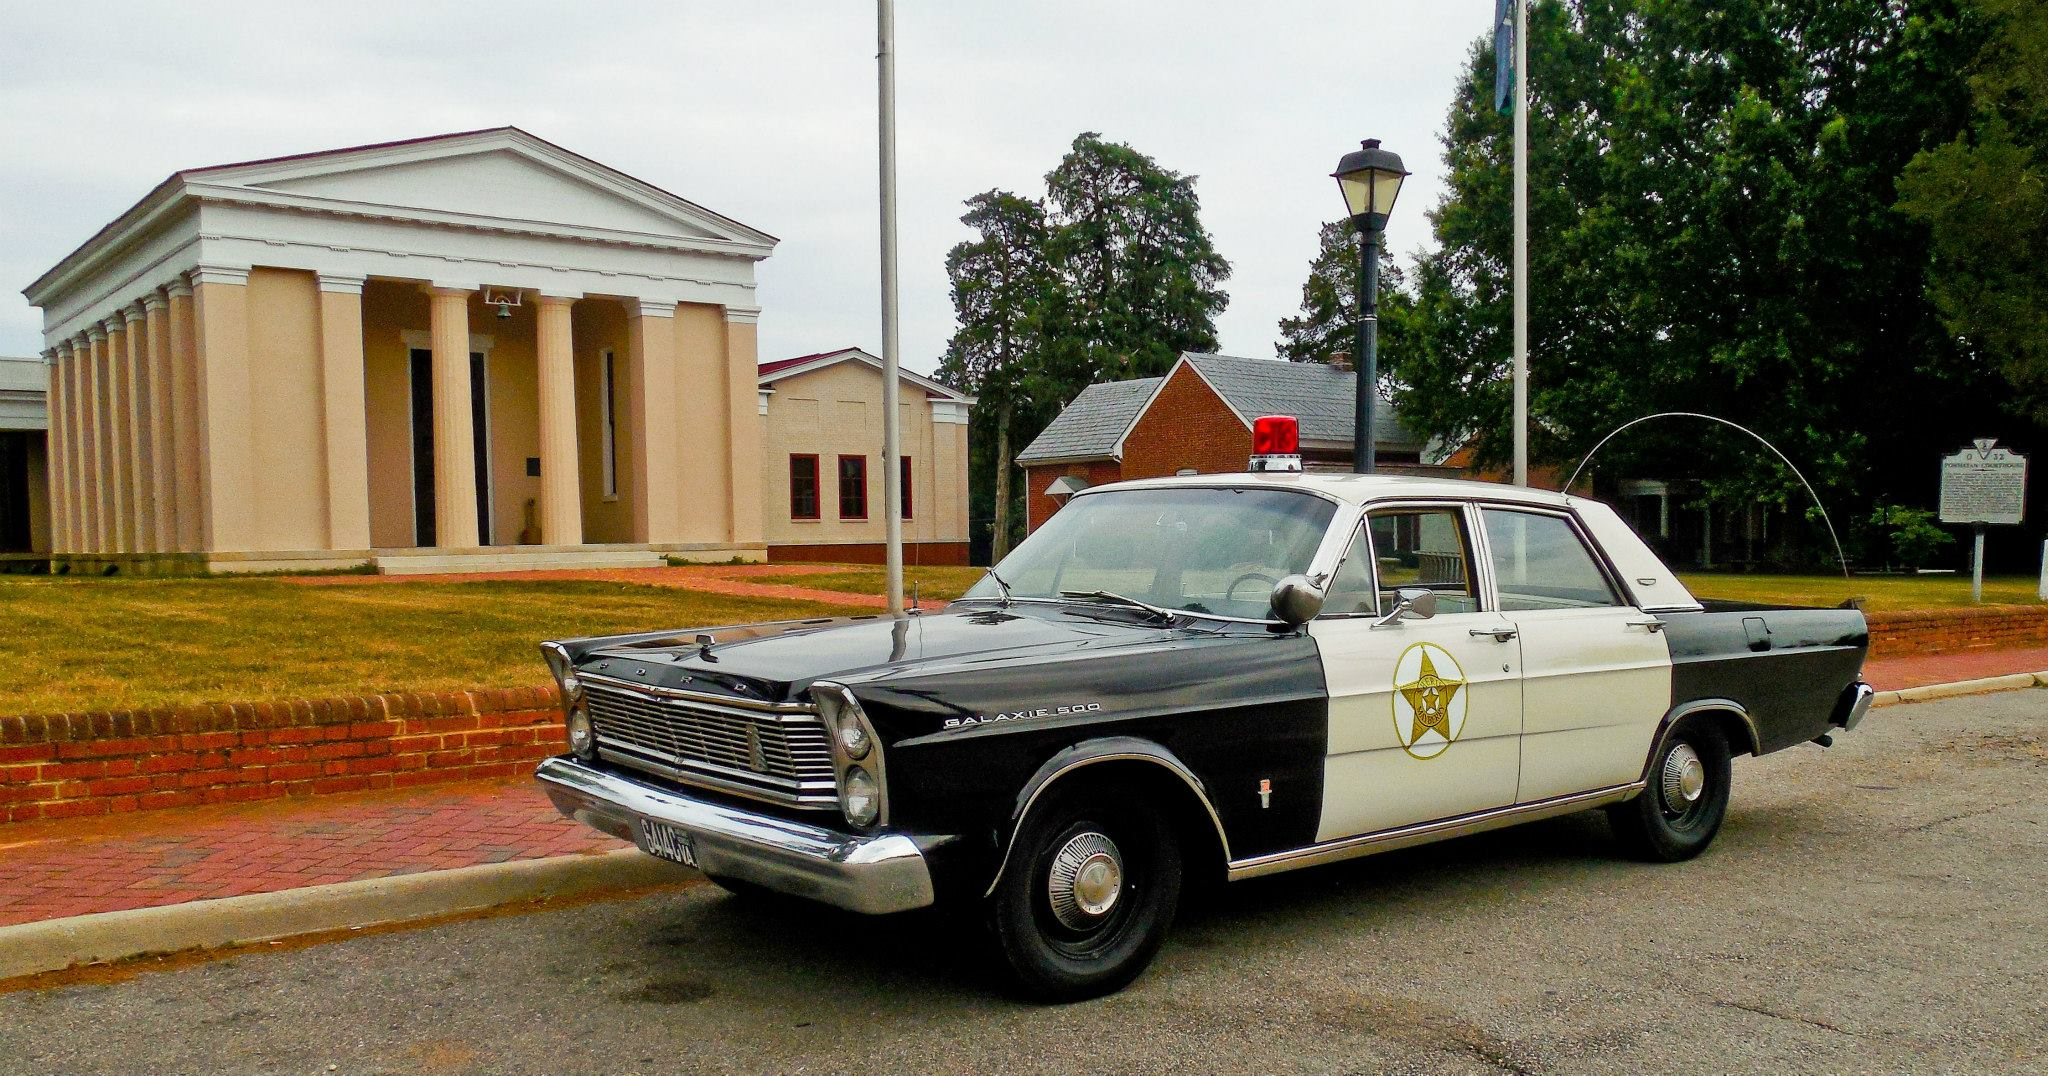 65 Mayberry Squad Car